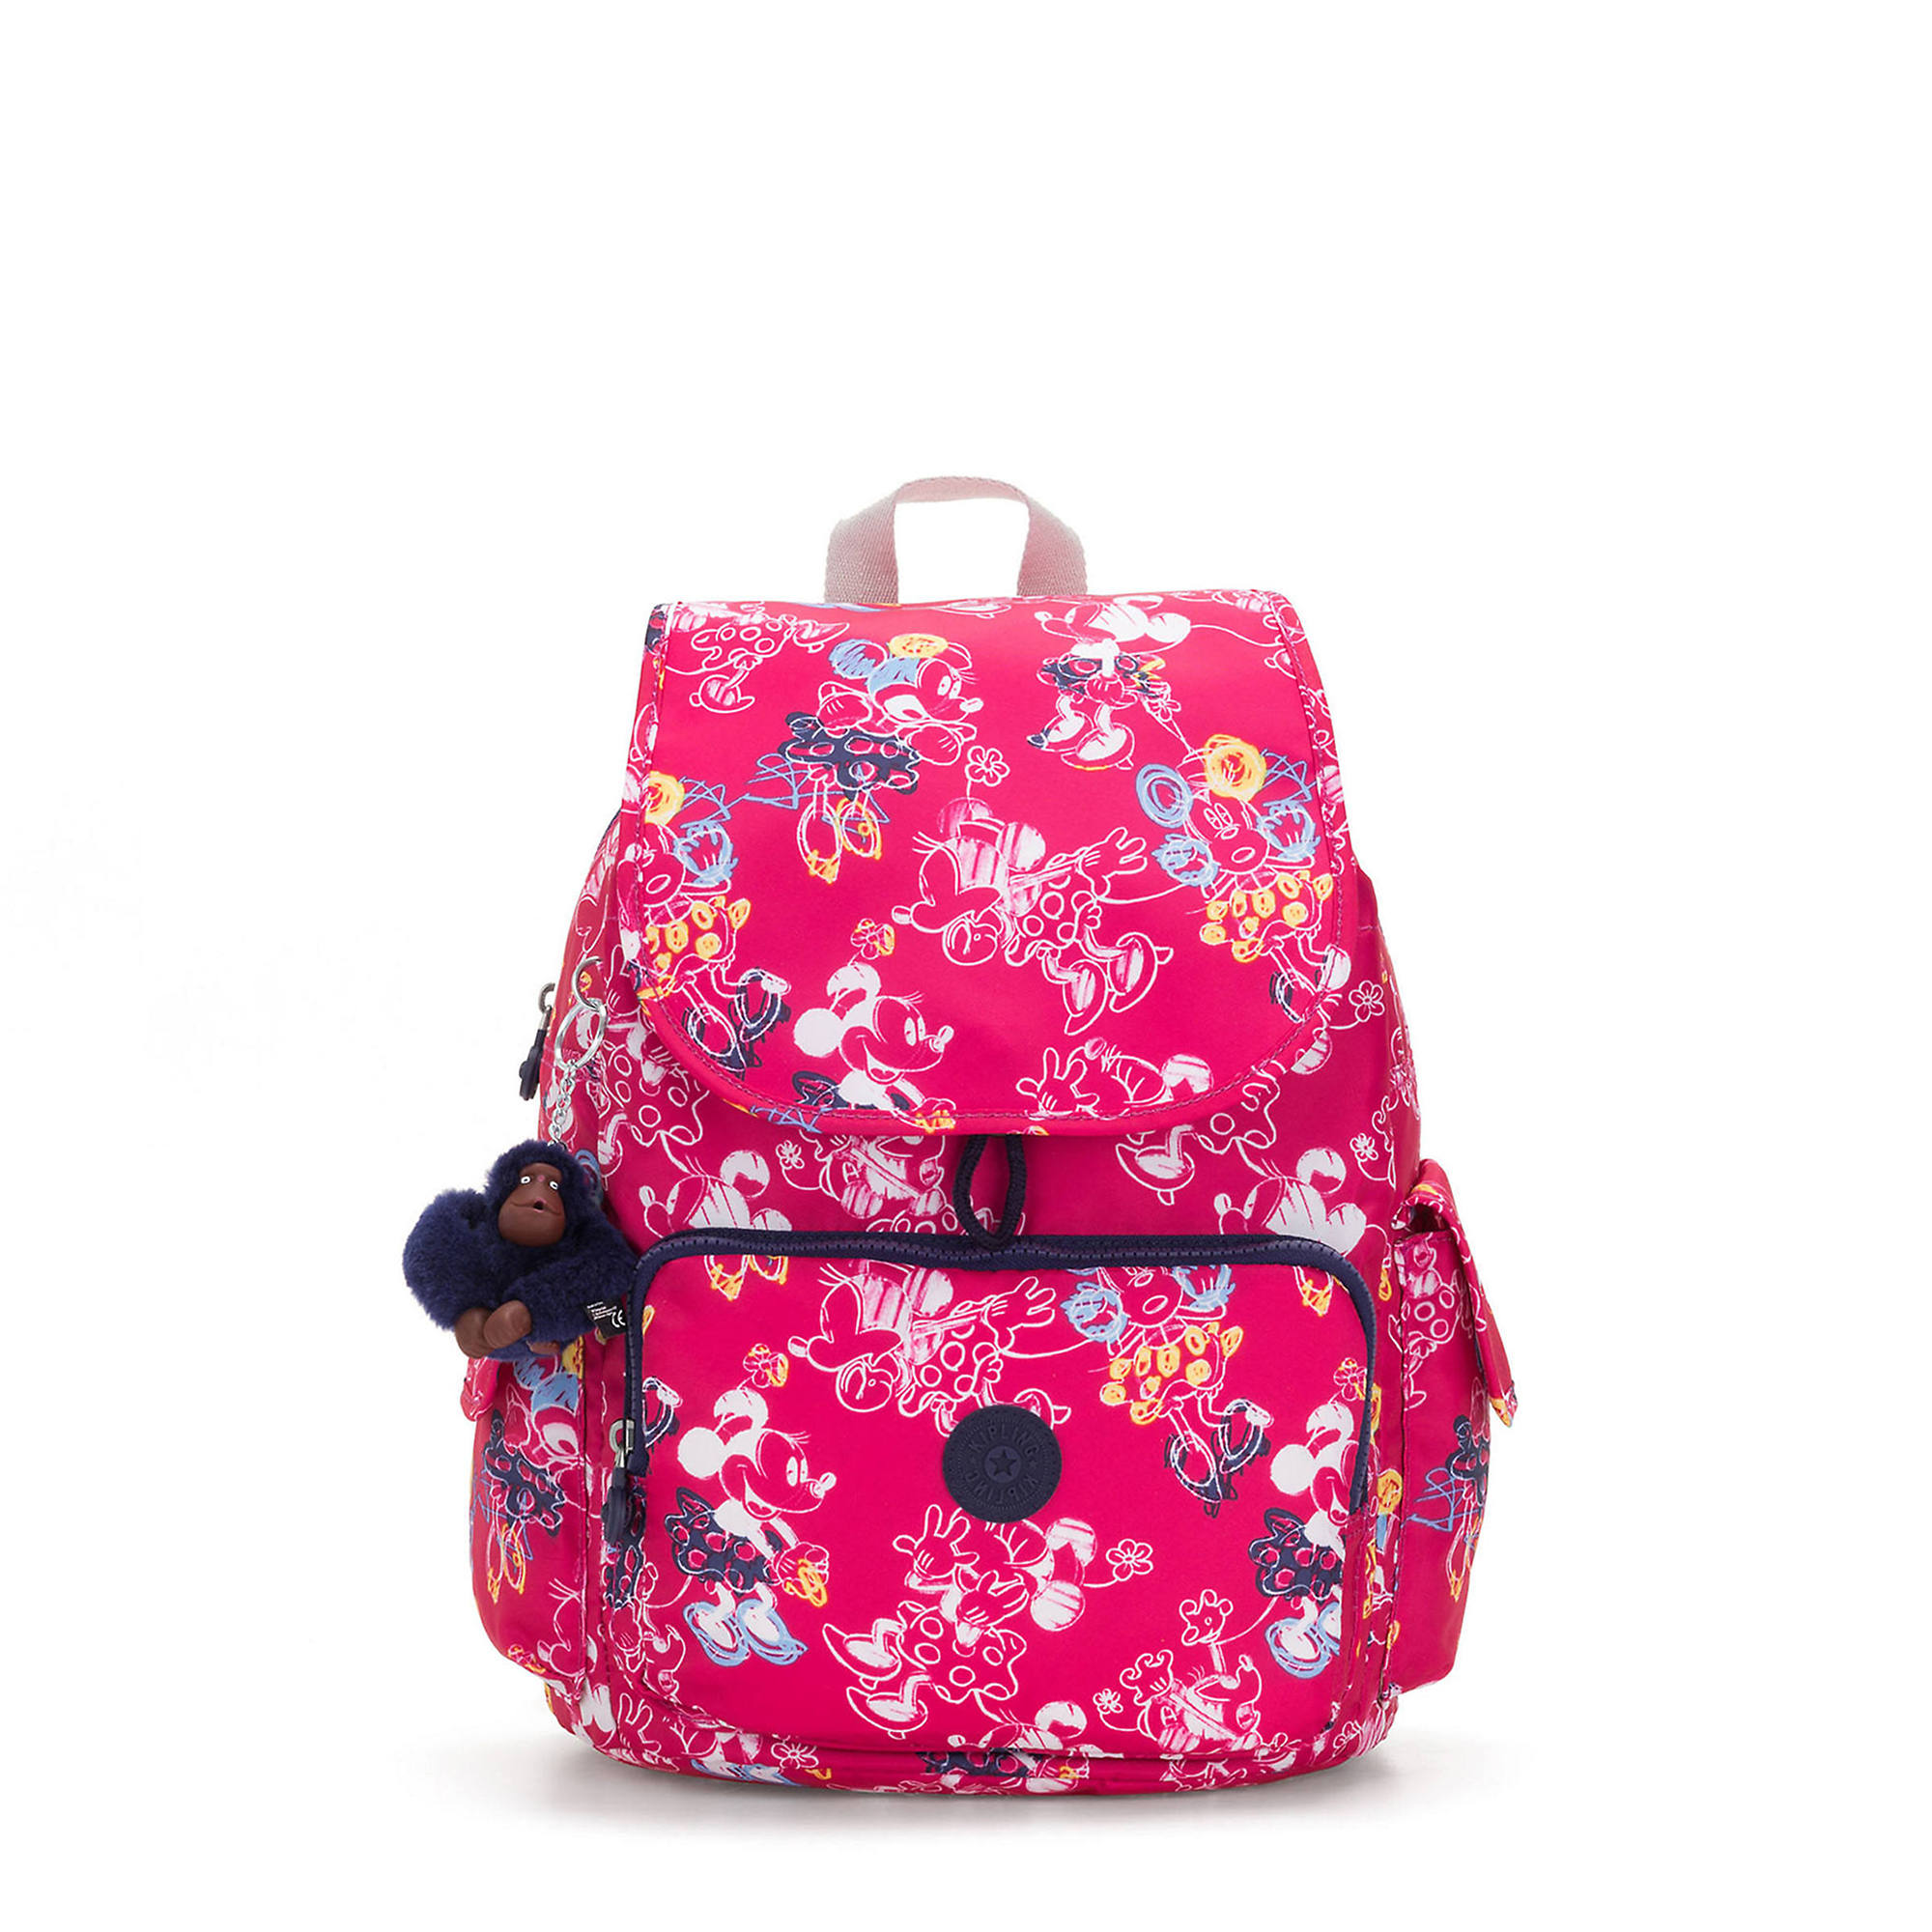 Citypack Disney s Minnie Mouse and Mickey Mouse City Pack Backpack